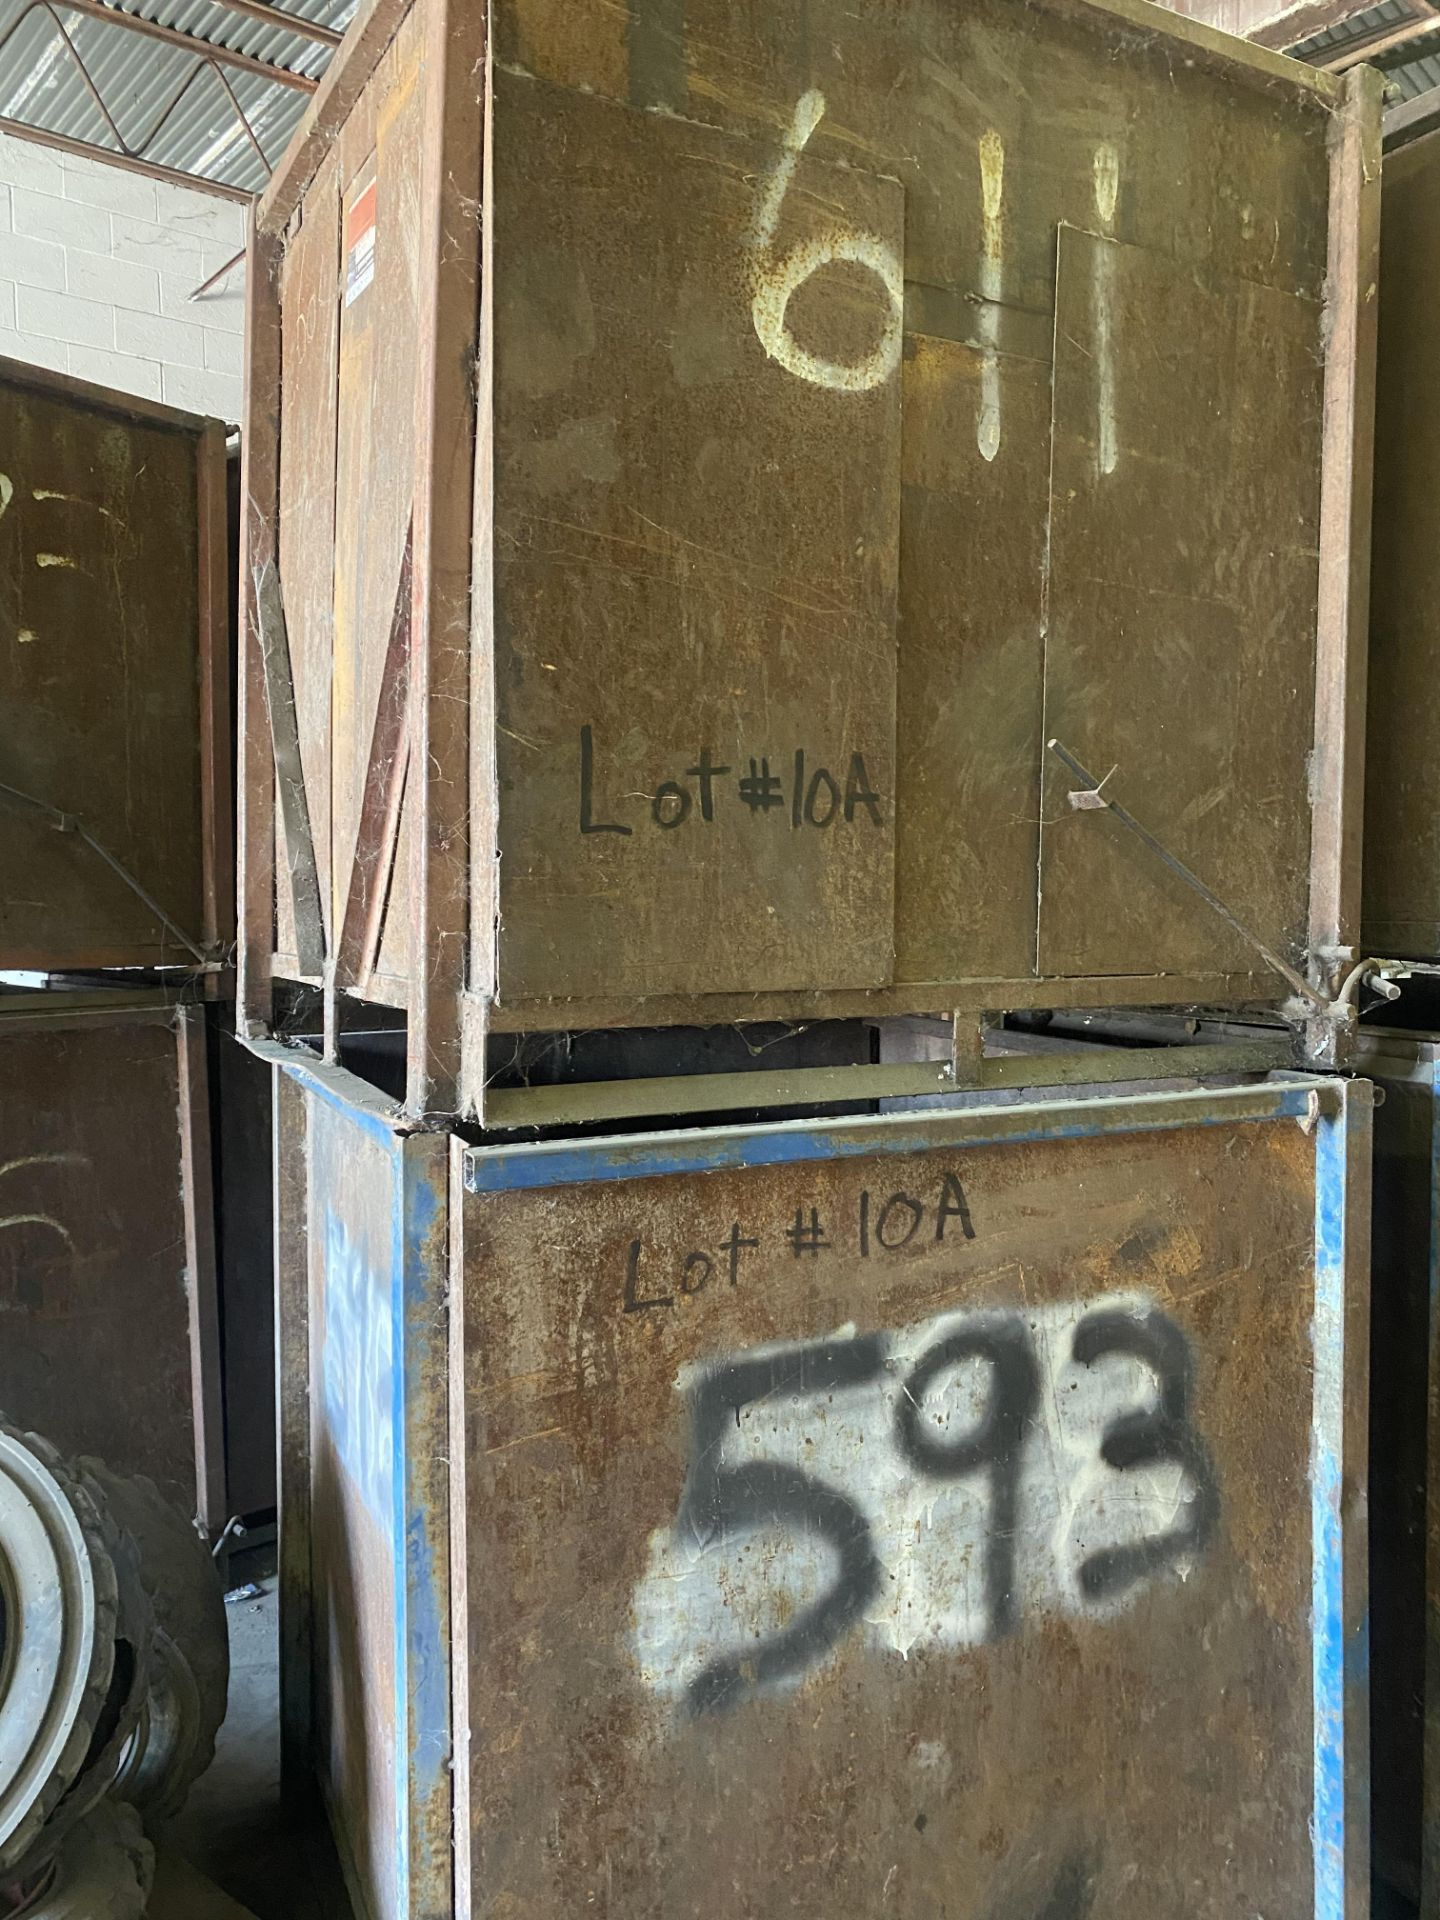 Lot 10A - Lot of (2) Steel Can Hoppers